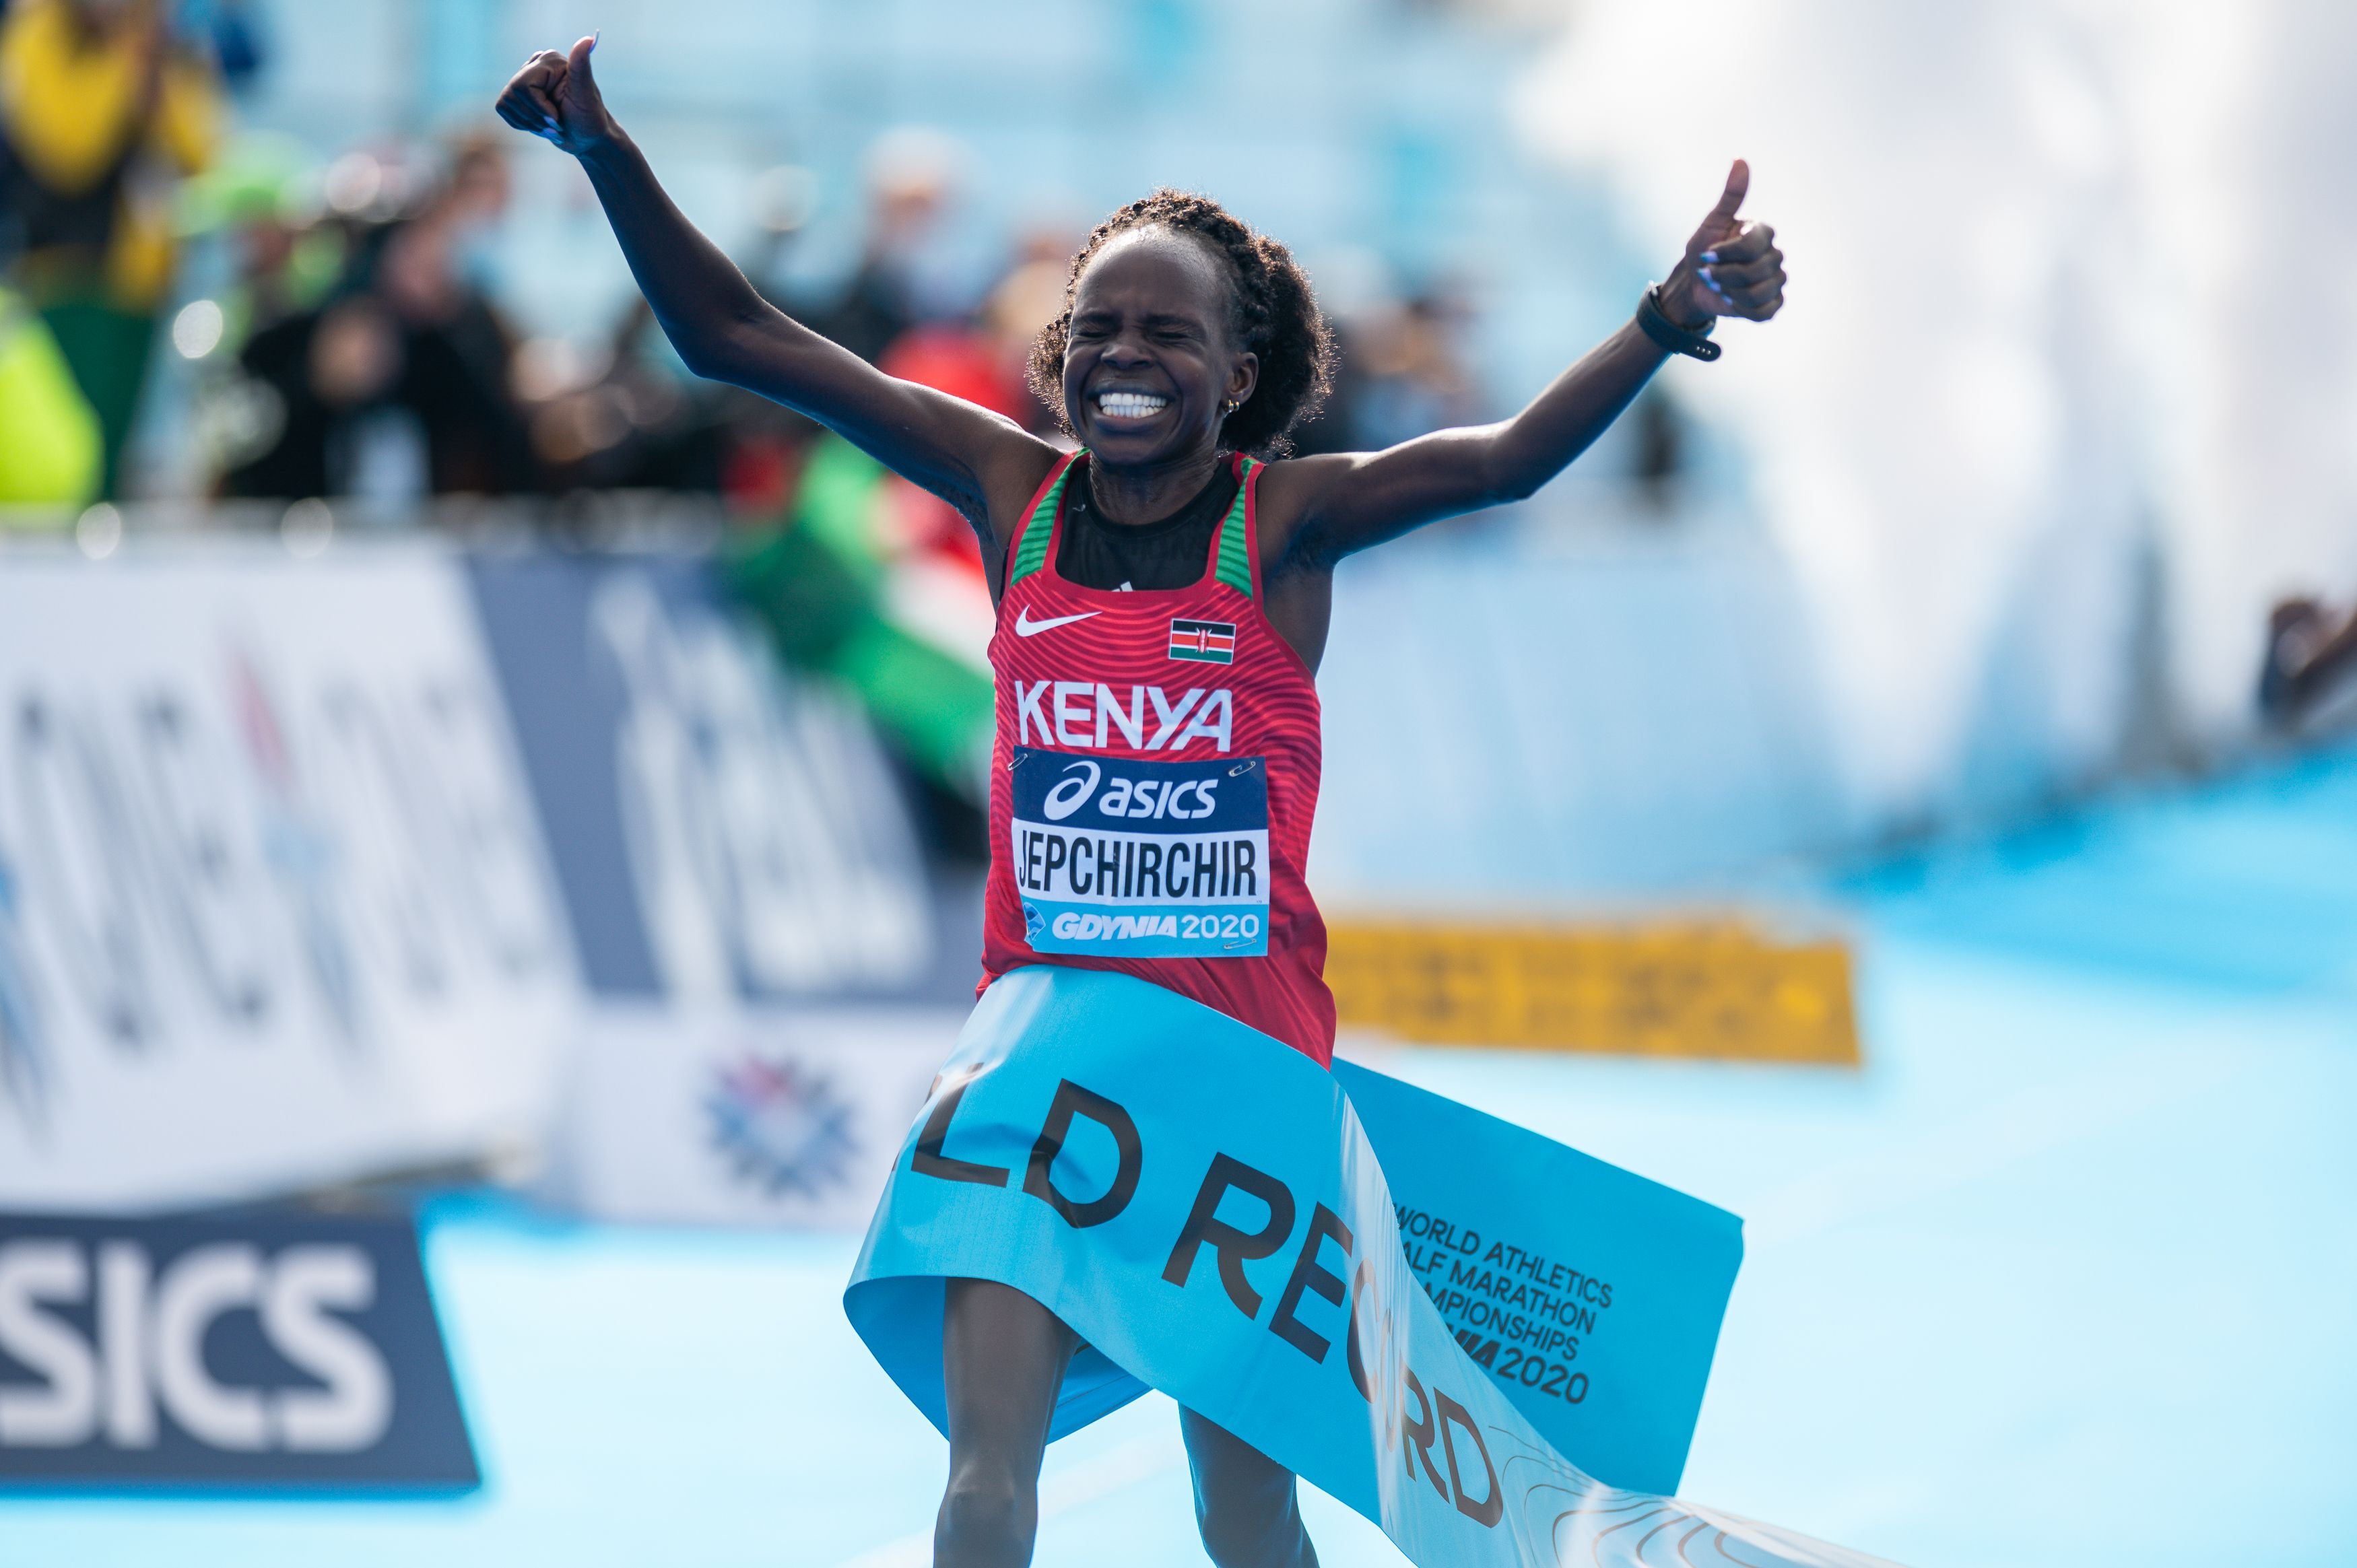 Kenya's Peres Jepchirchir breaks own world record at World Athletics Half Marathon Championships